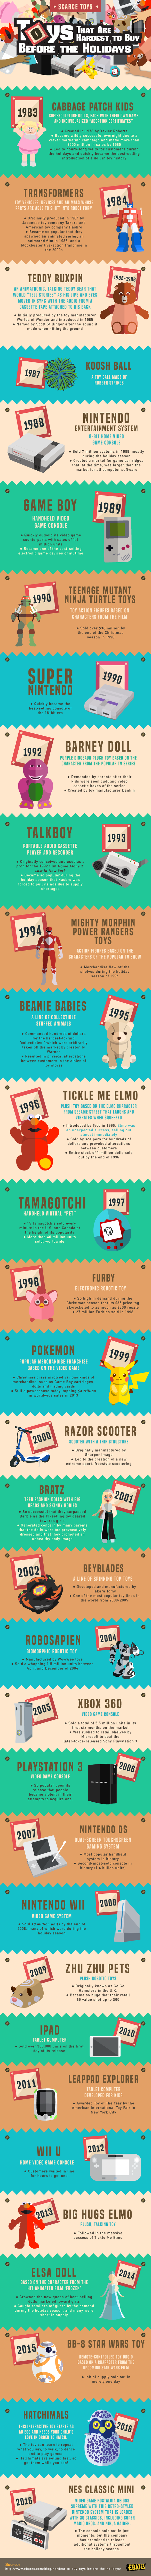 The Most Popular Toys Through the Decades